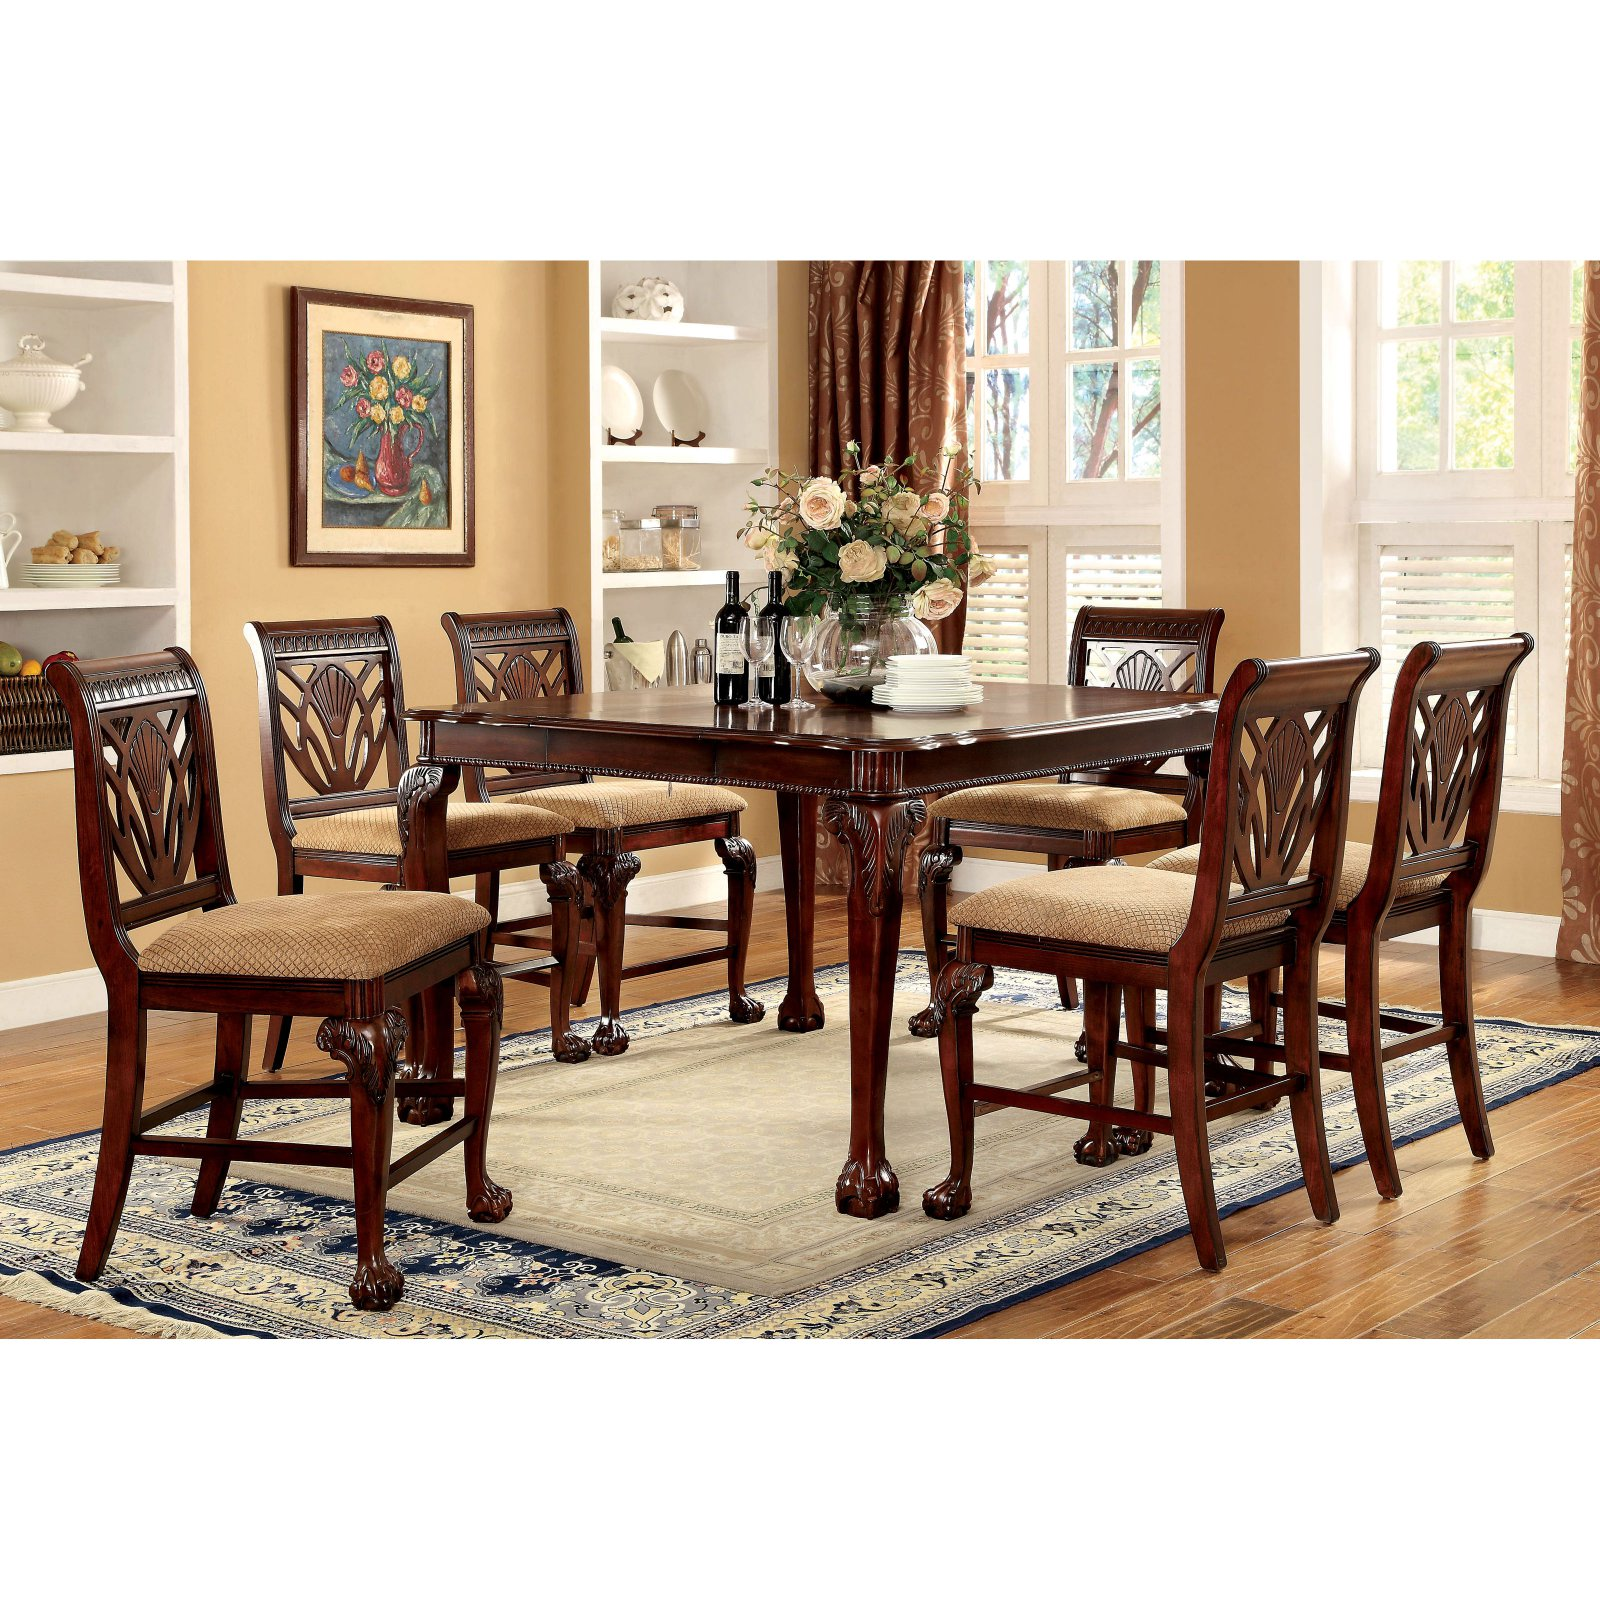 furniture of america harsburough classic counter height 7 piece dining table set